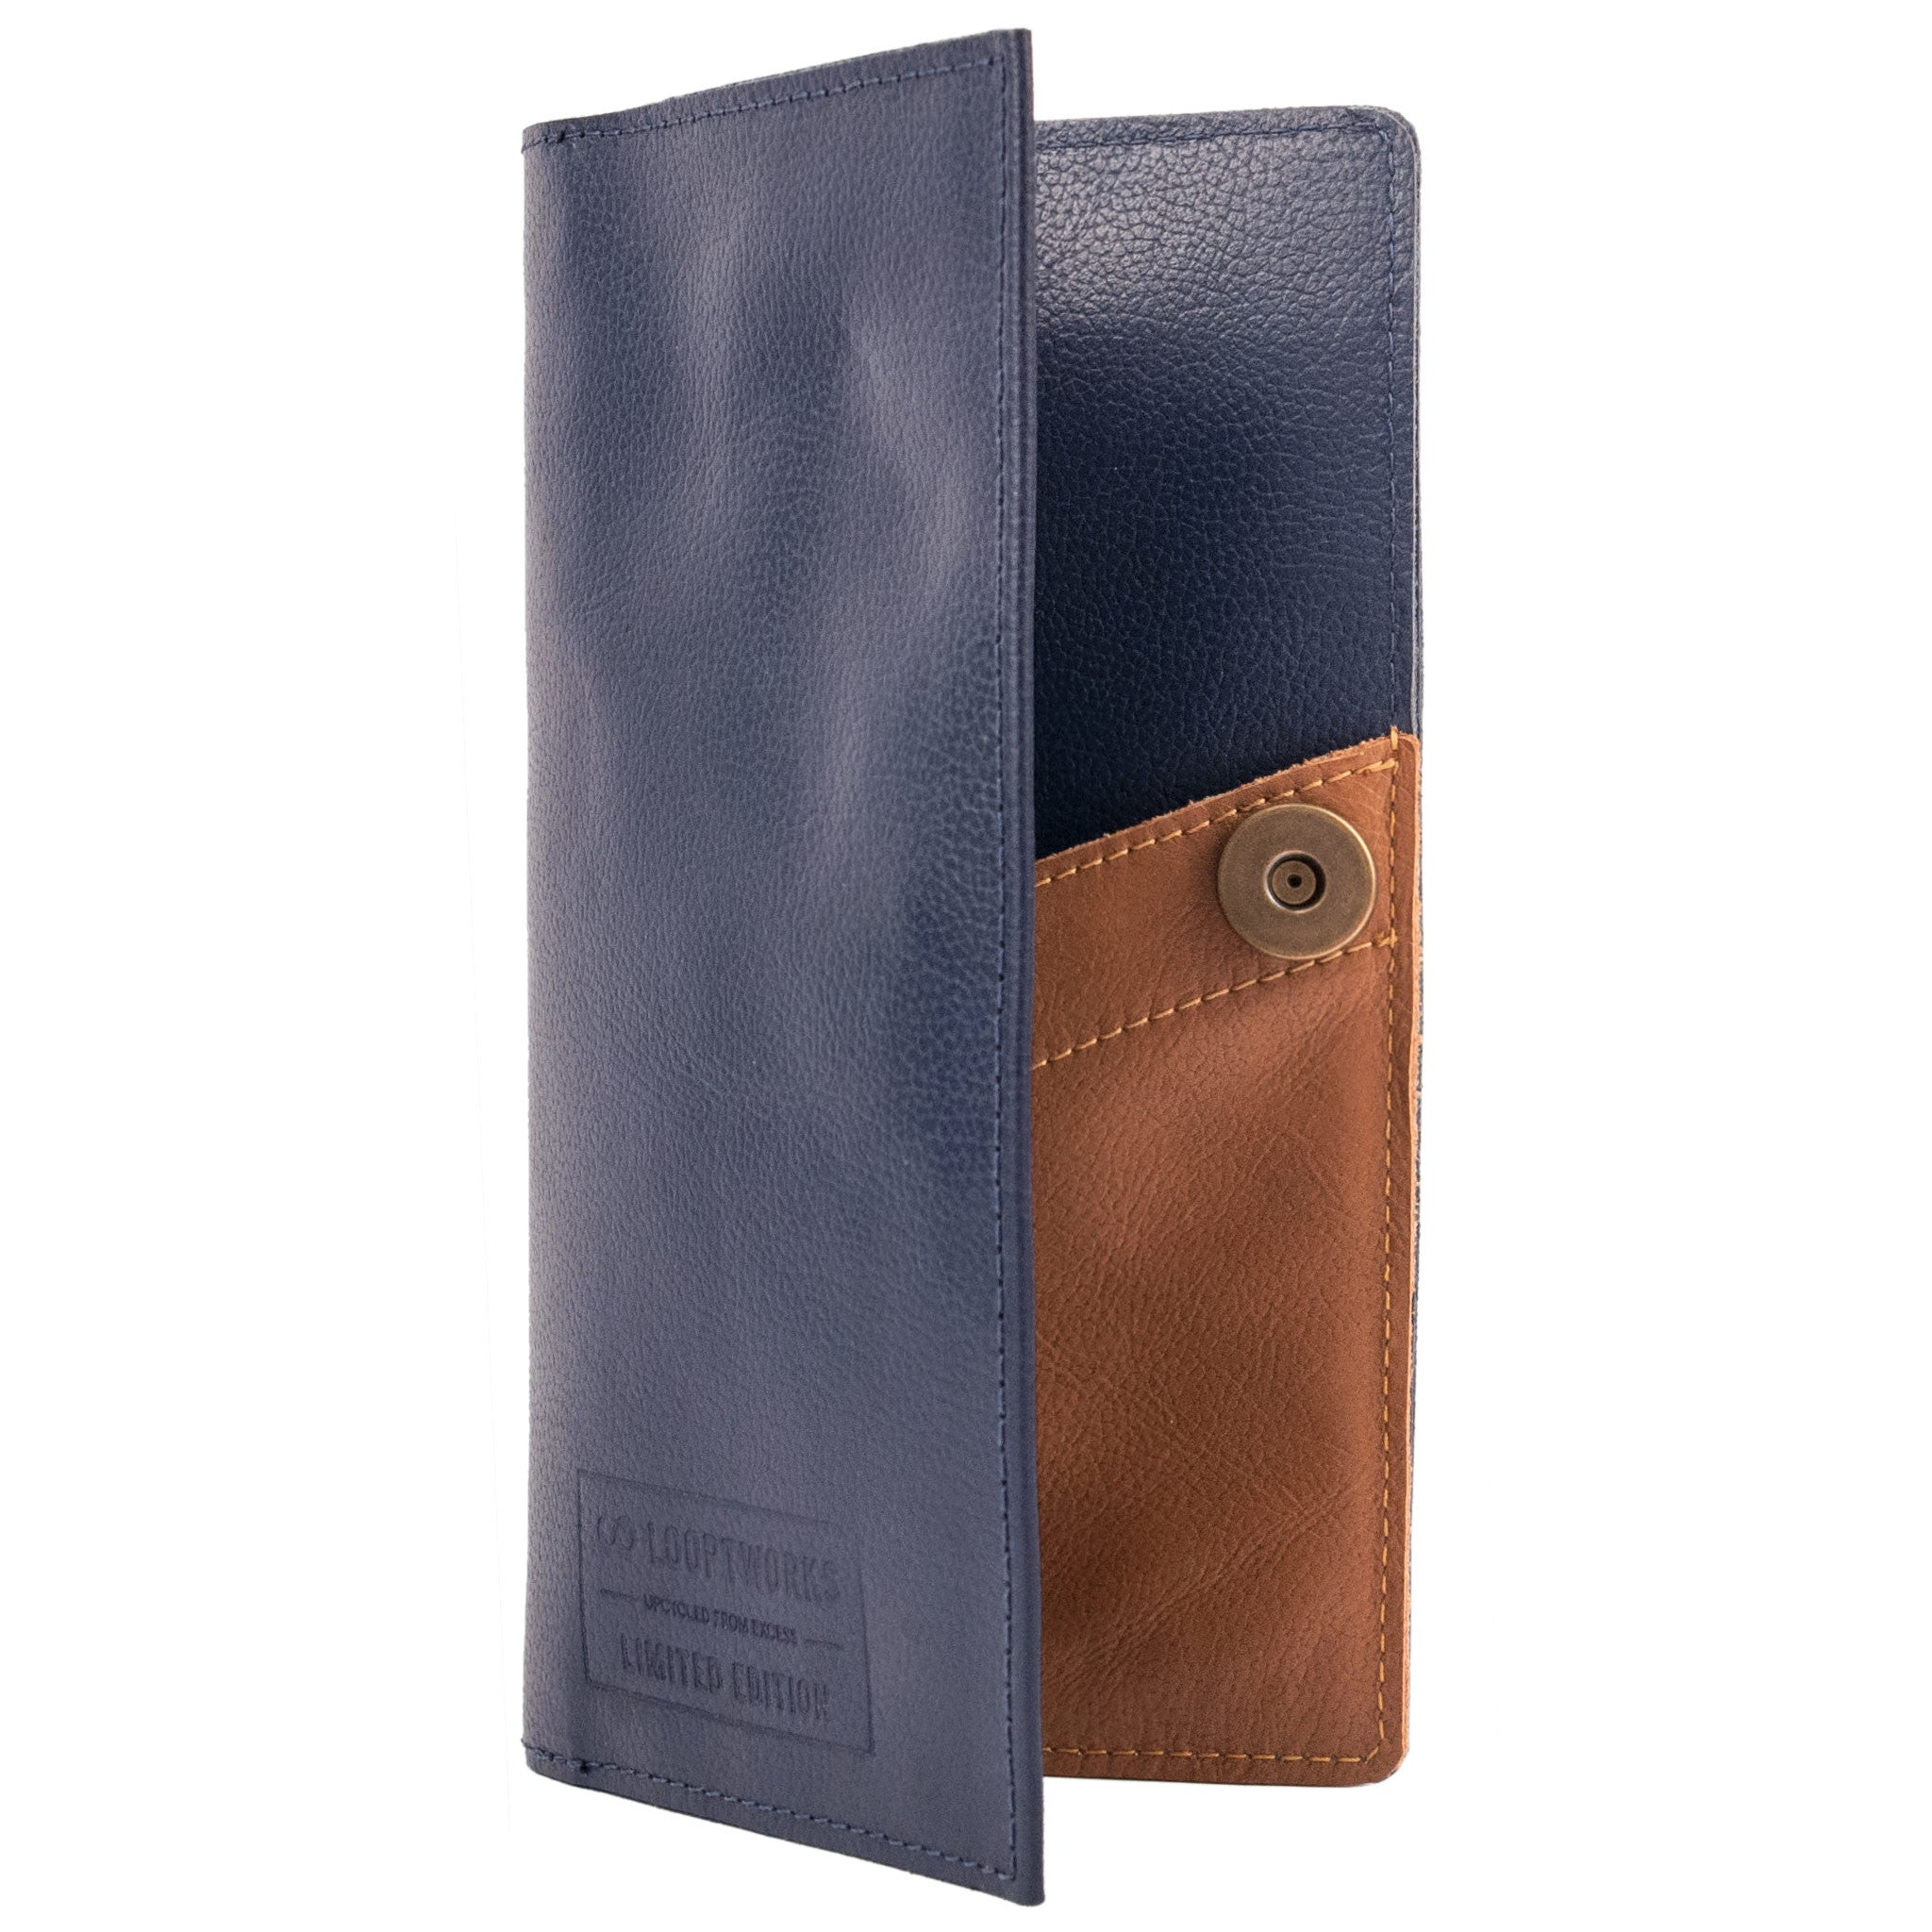 In Flight Passport Wallet Accessories - Looptworks